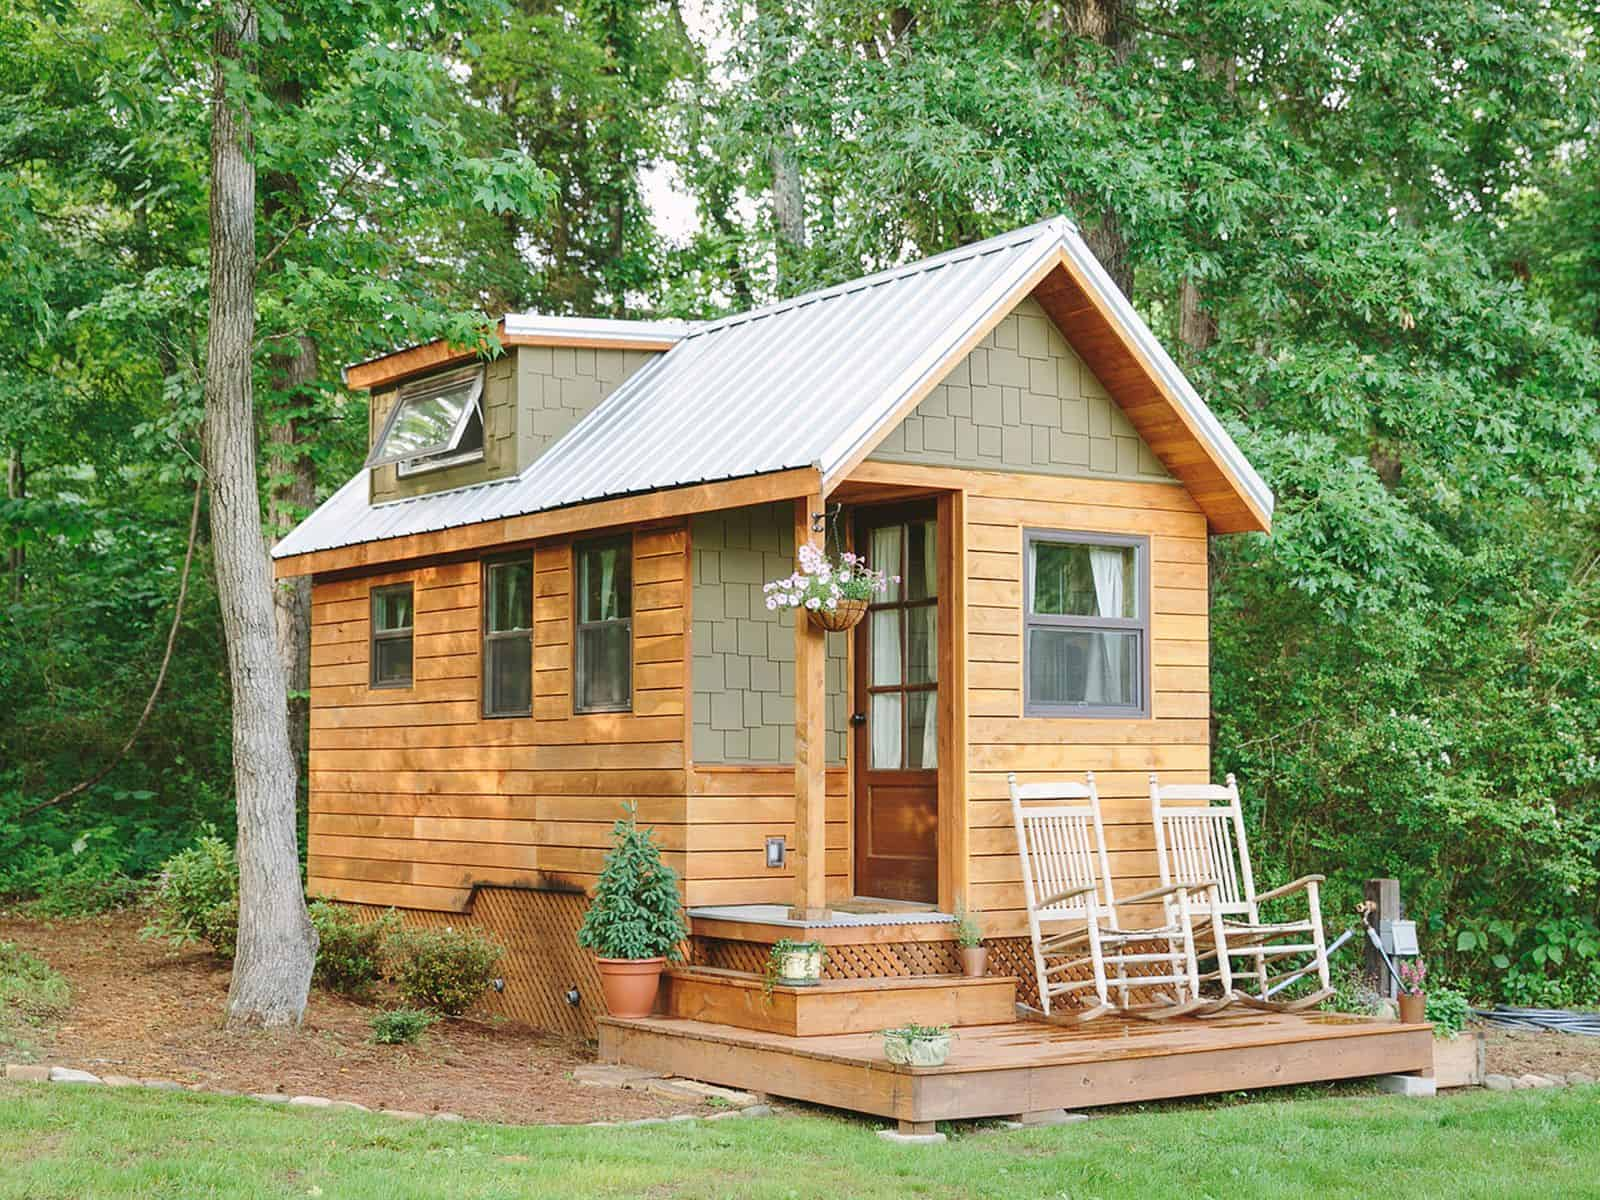 Extremely tiny homes minimalistic living in style for Tiny house floor plans for sale